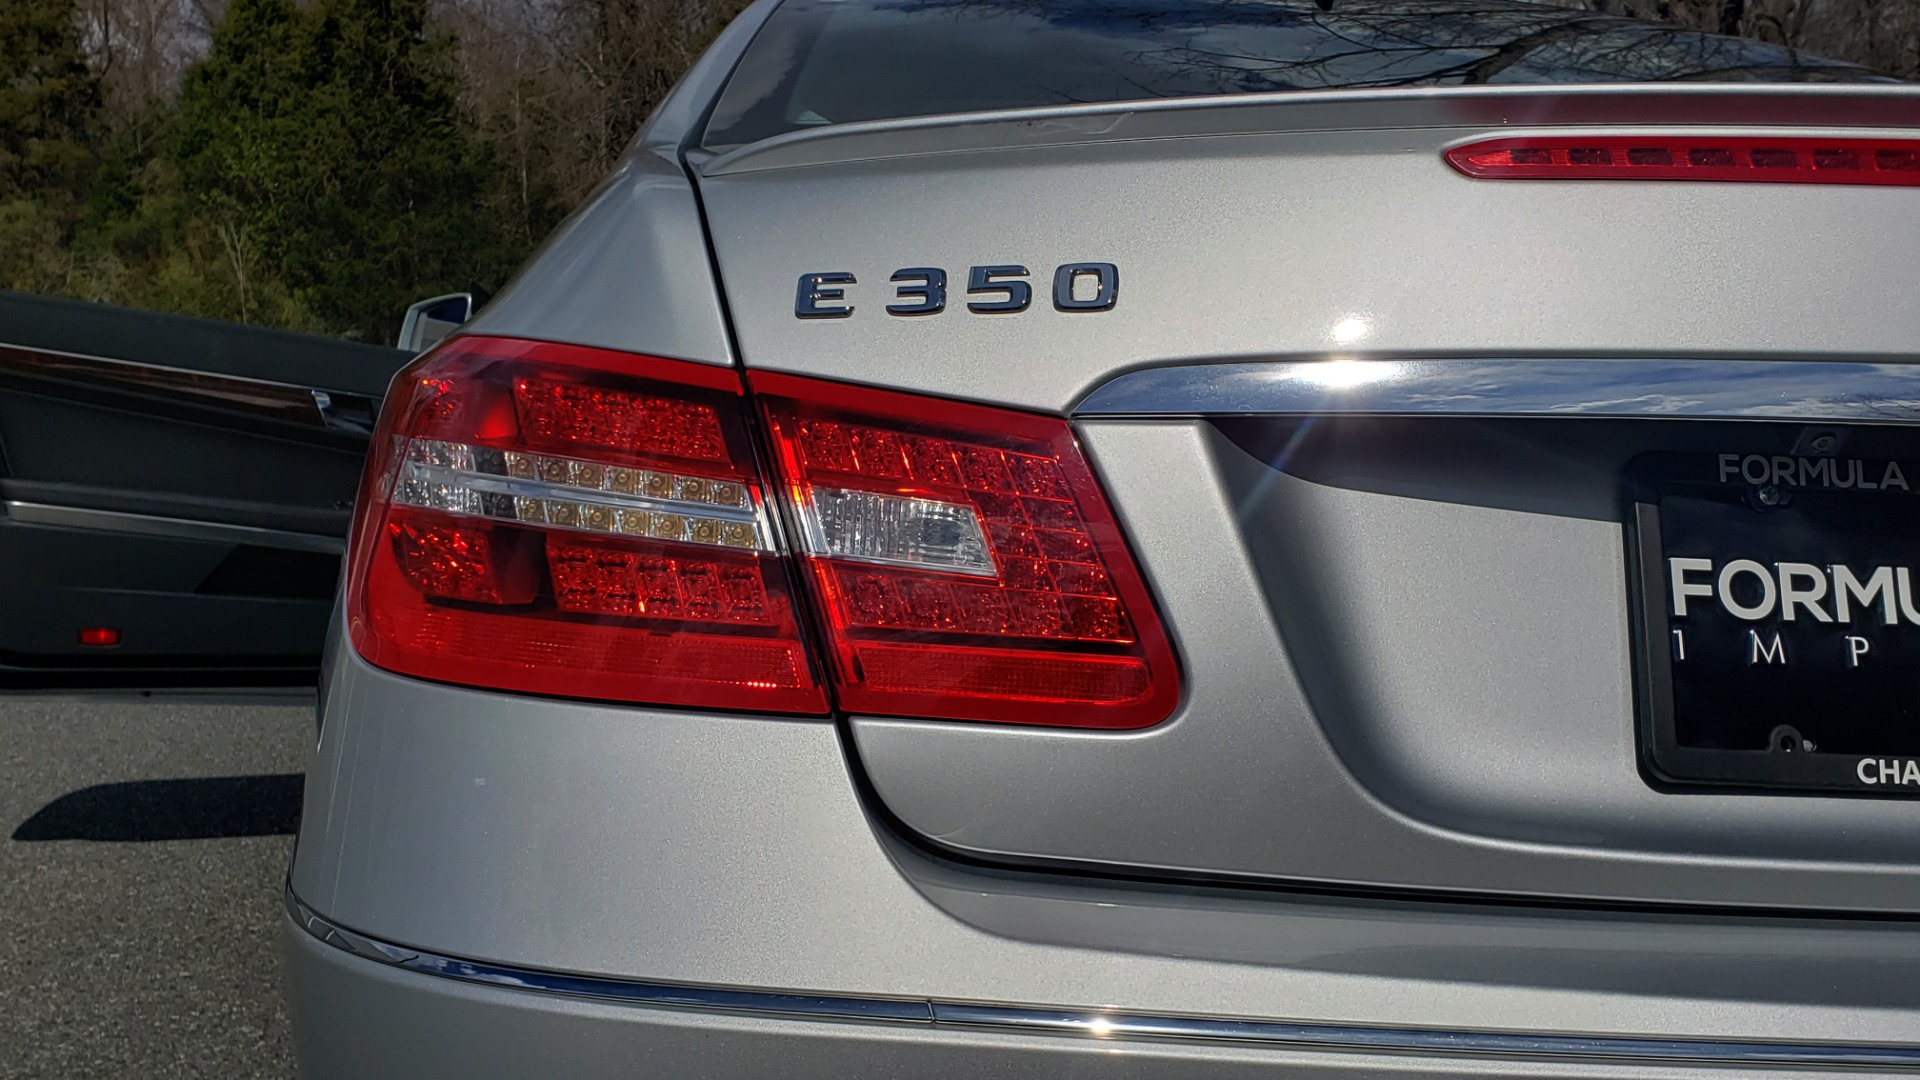 Used 2013 Mercedes-Benz E-CLASS E 350 COUPE PREM / NAV / PANO-ROFF / KEYLESS-GO / REARVIEW for sale Sold at Formula Imports in Charlotte NC 28227 25